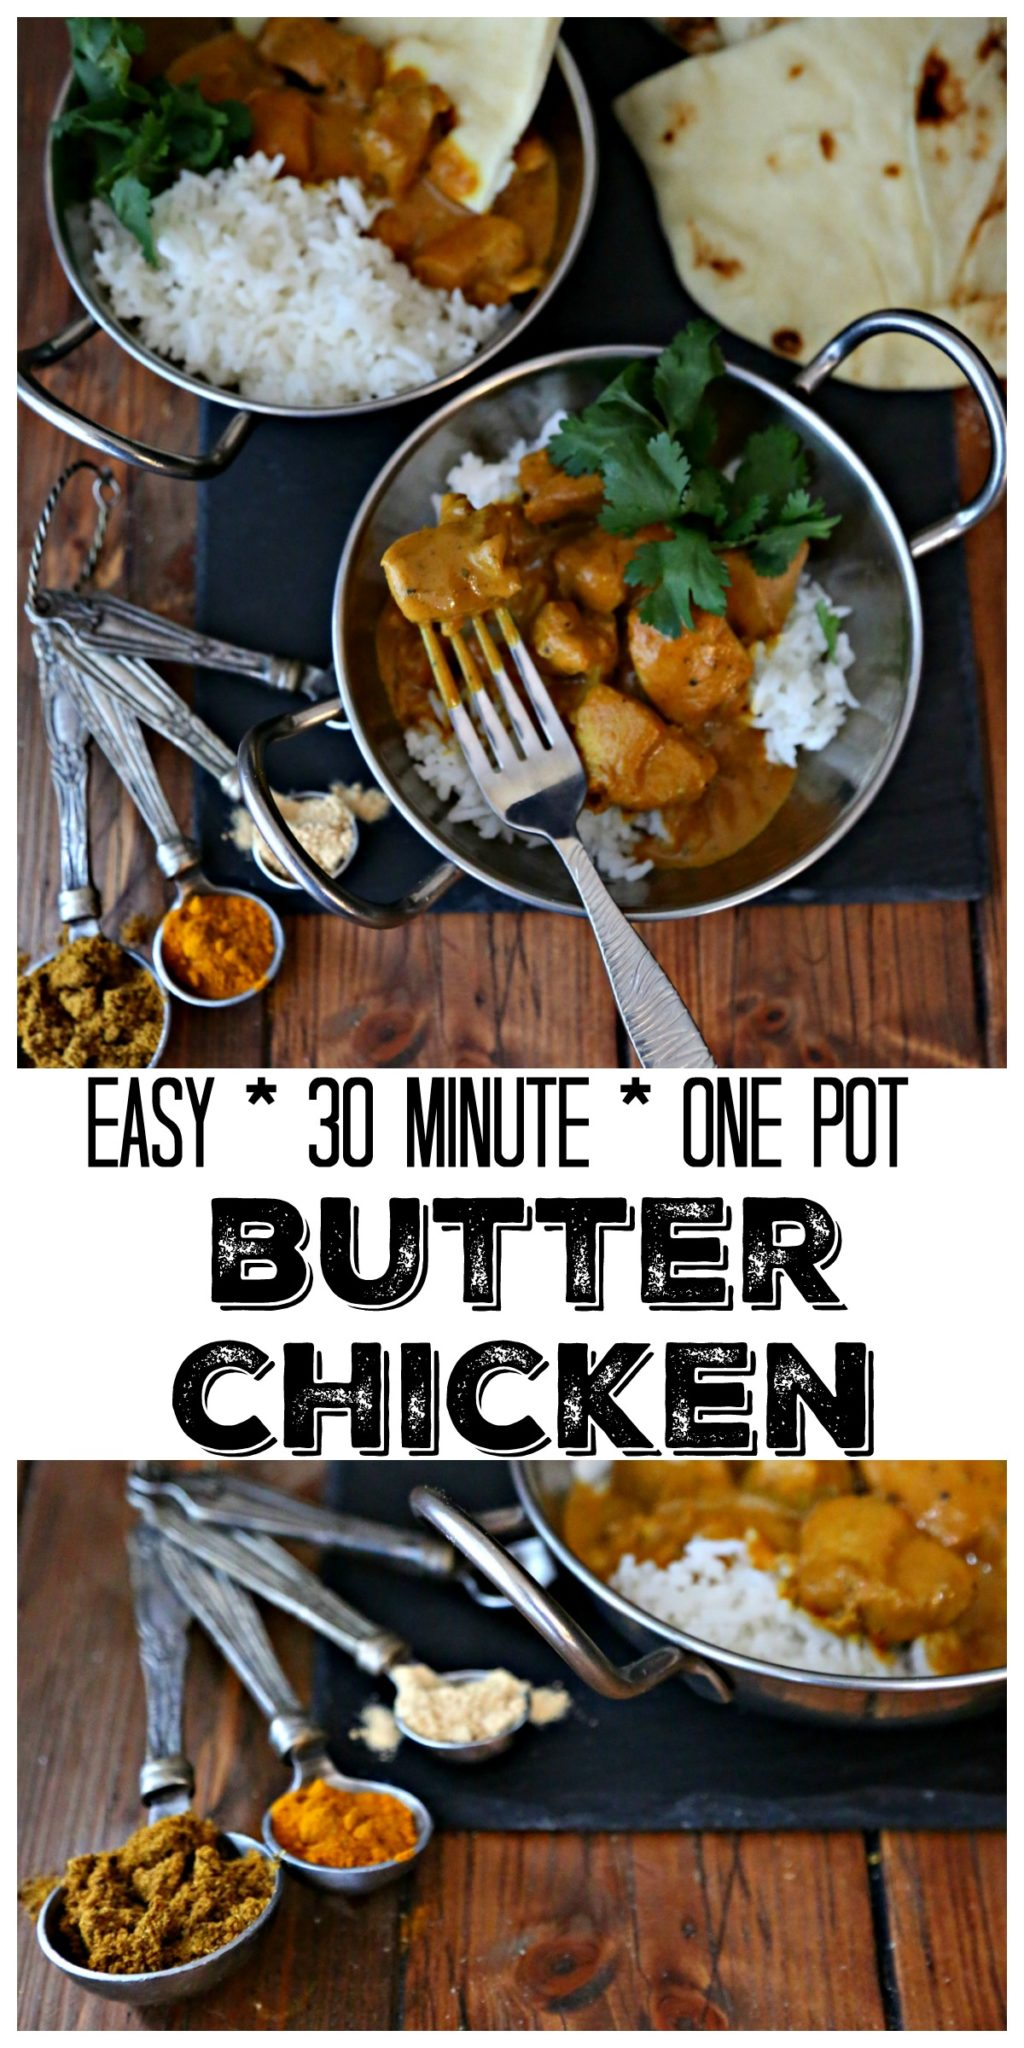 If you're craving Indian food try this easy one pot Butter Chicken recipe. Ready in just 30 minutes!  #Indian #Chicken #ButterChicken #ChickenRecipes #glutenfree